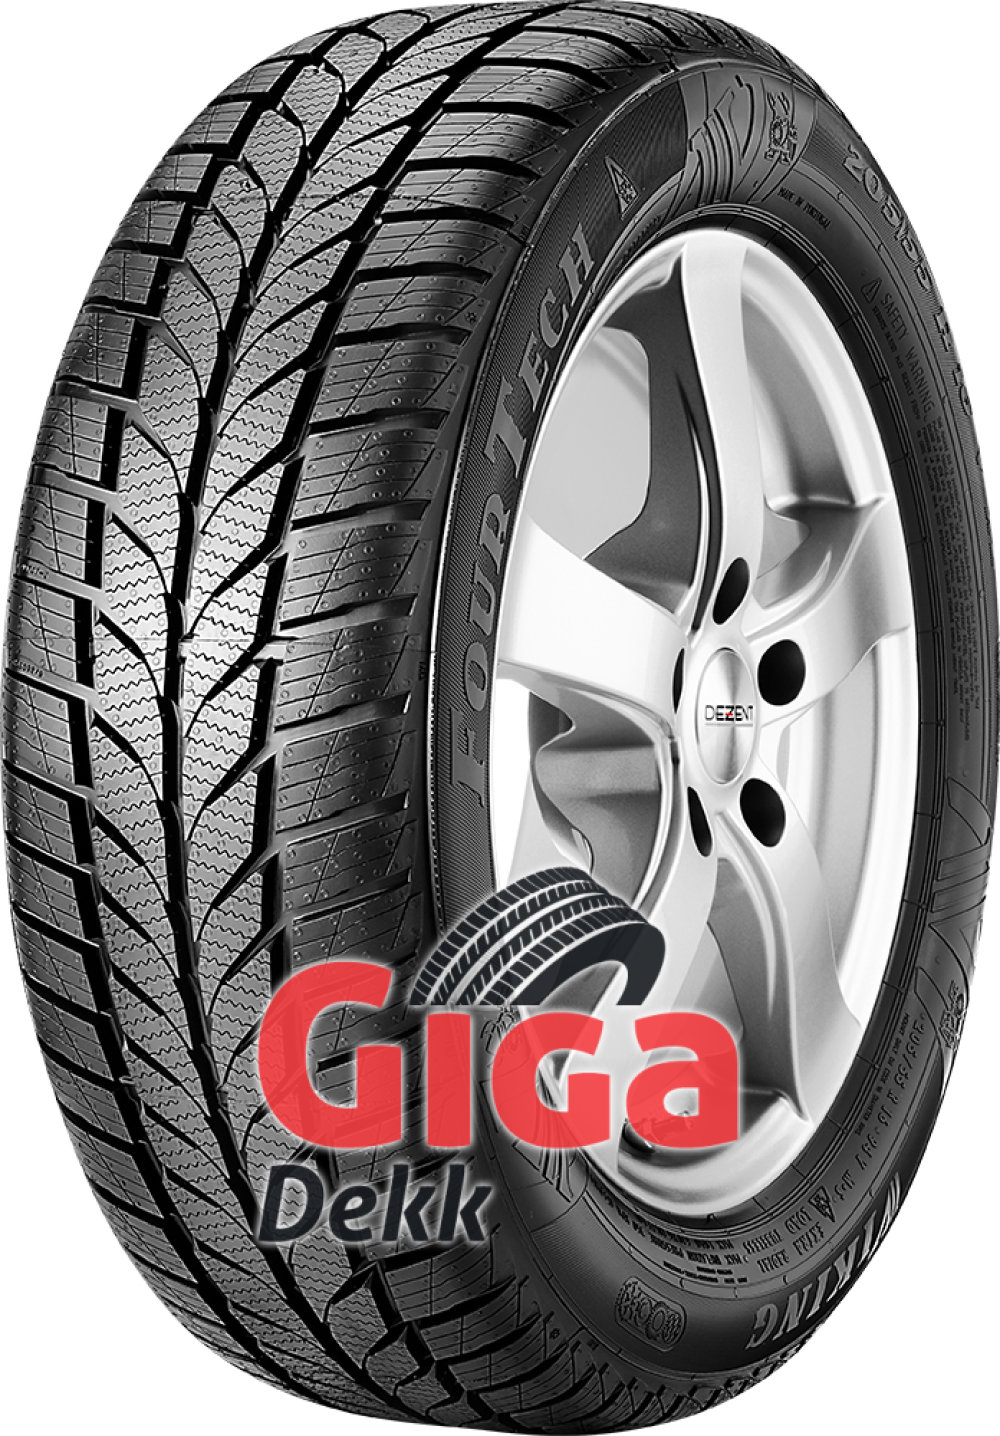 Viking FourTech All Season ( 185/65 R14 86H )